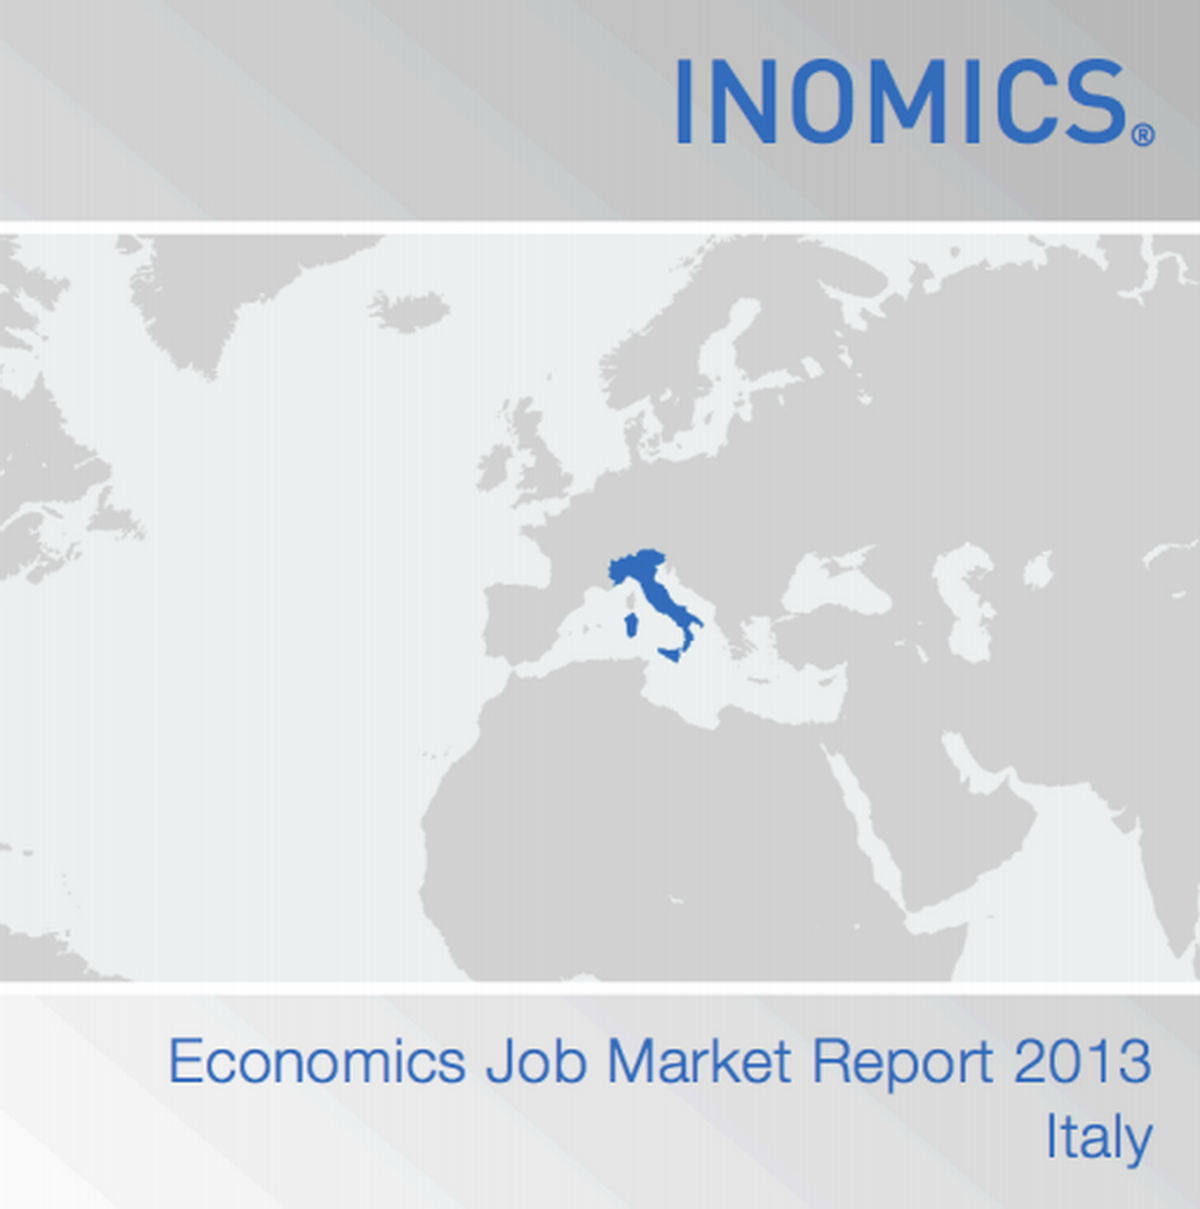 economics job market report 2013 italy inomics. Black Bedroom Furniture Sets. Home Design Ideas